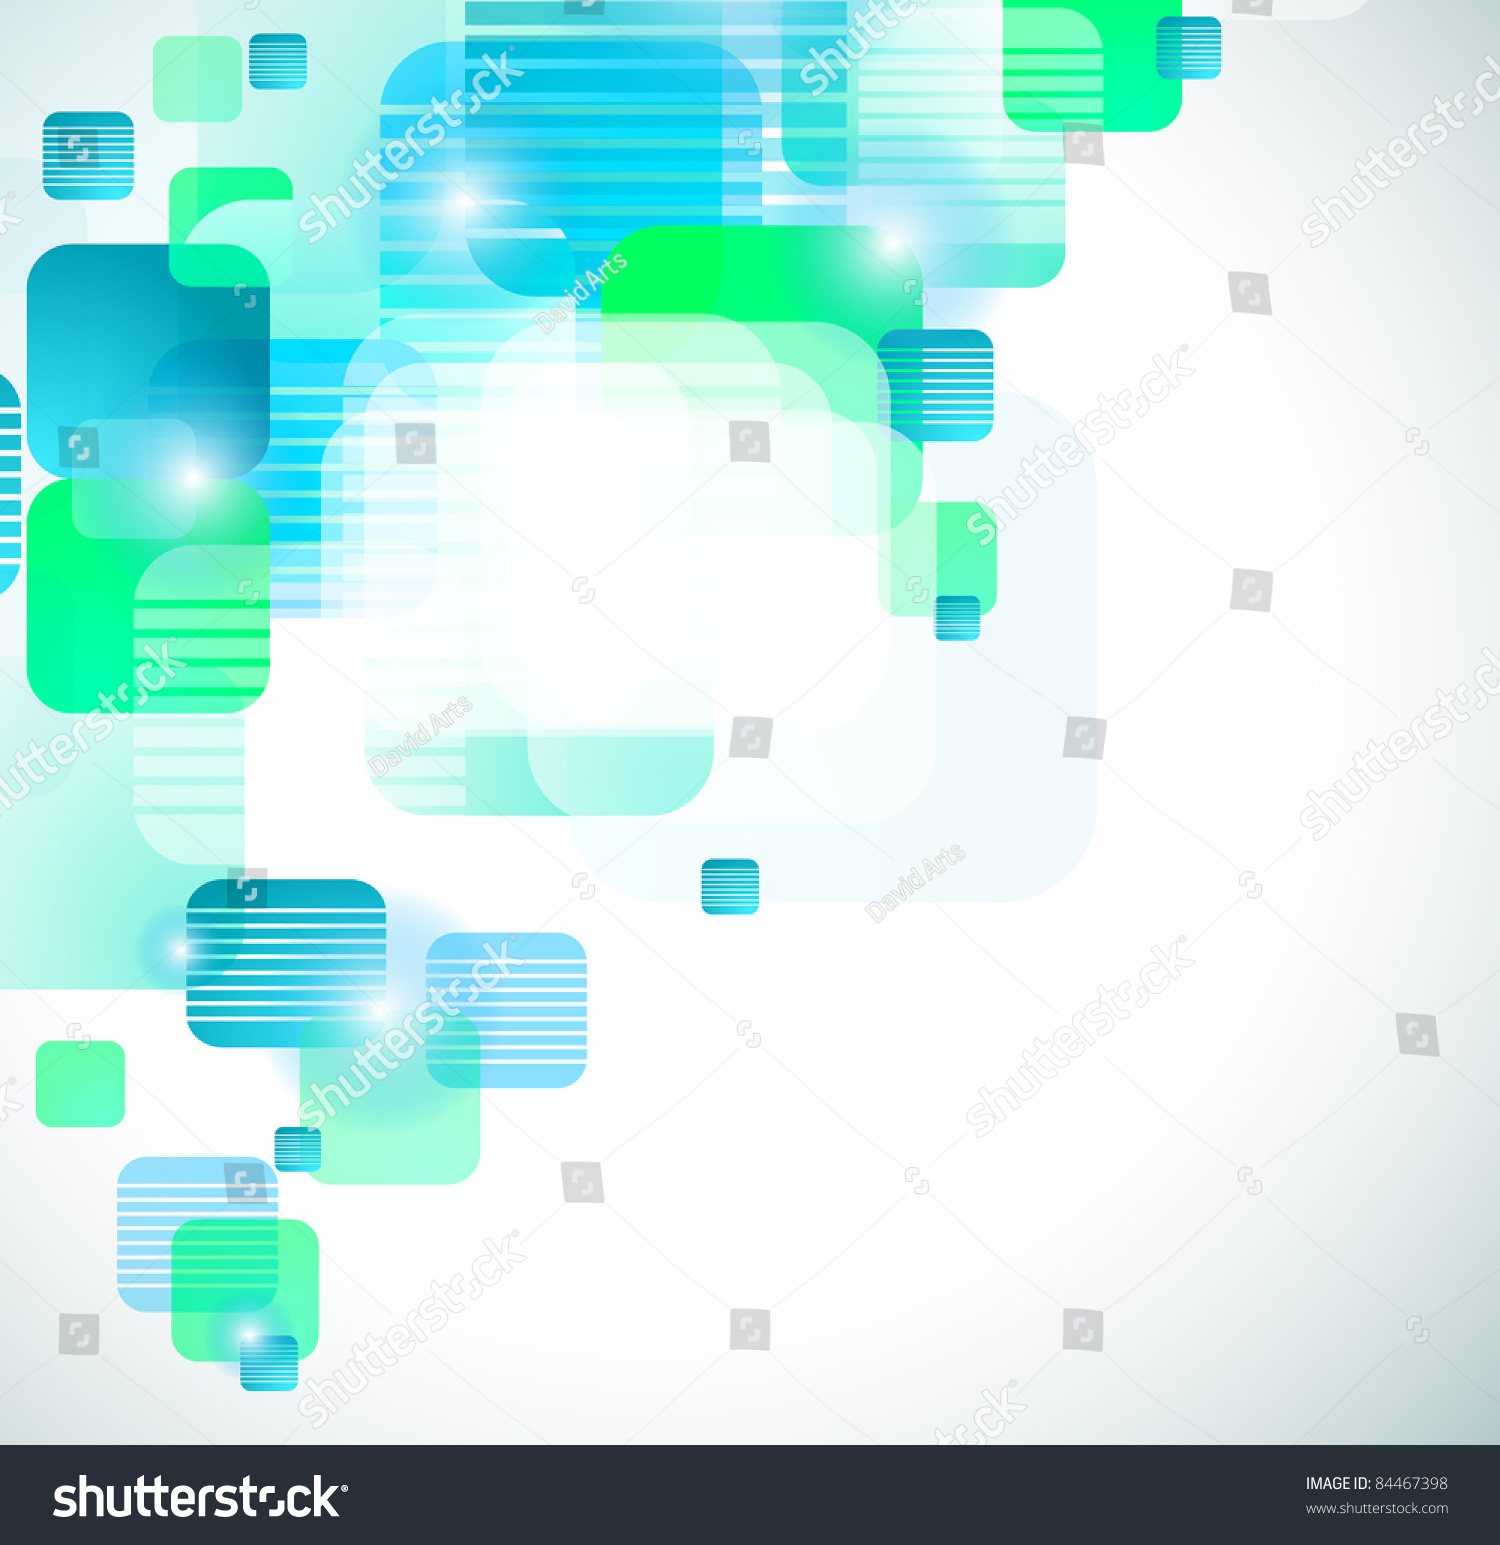 abstract business corporate background elegant flyers stock abstract business or corporate background for elegant flyers or posters space for you slogan